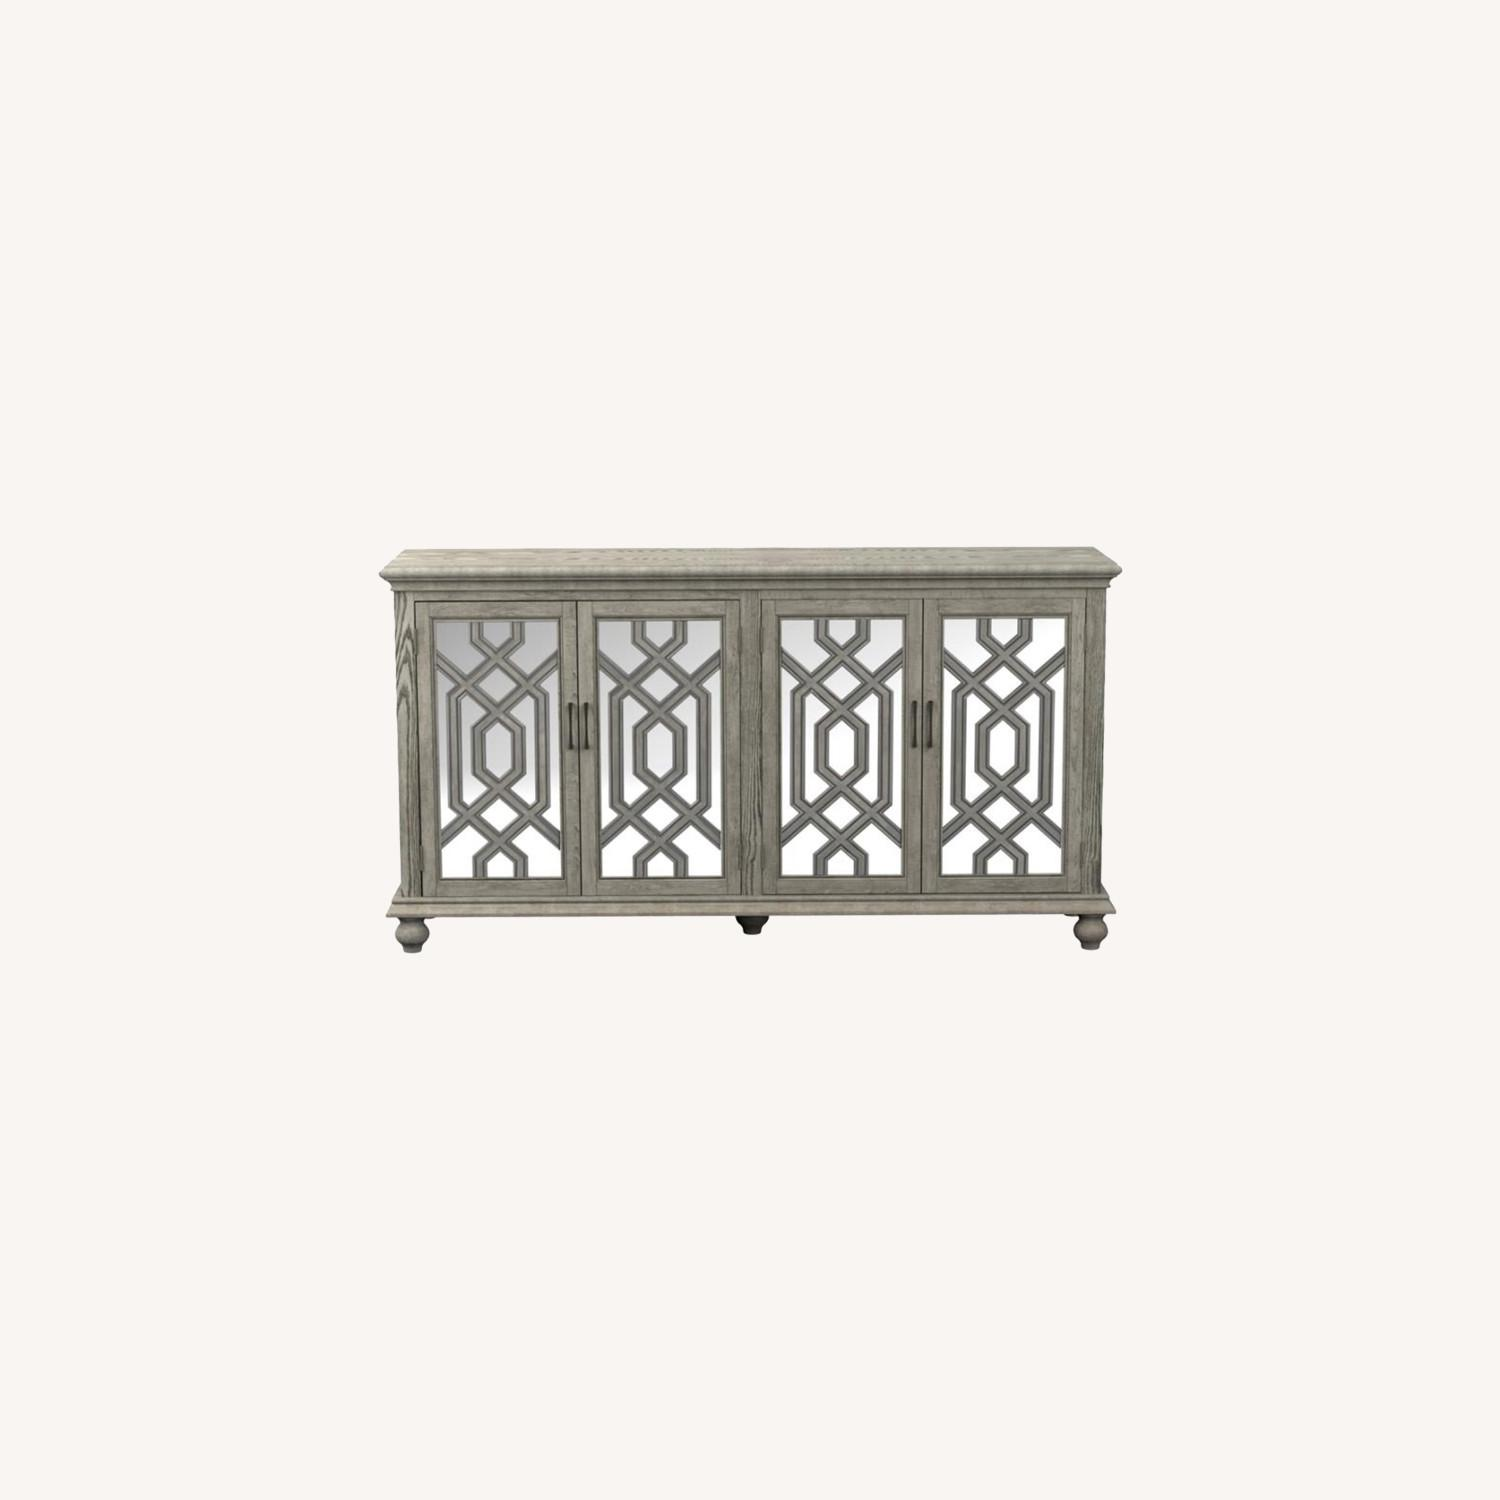 Accent Cabinet In Antique White W/ Bronze Details - image-6